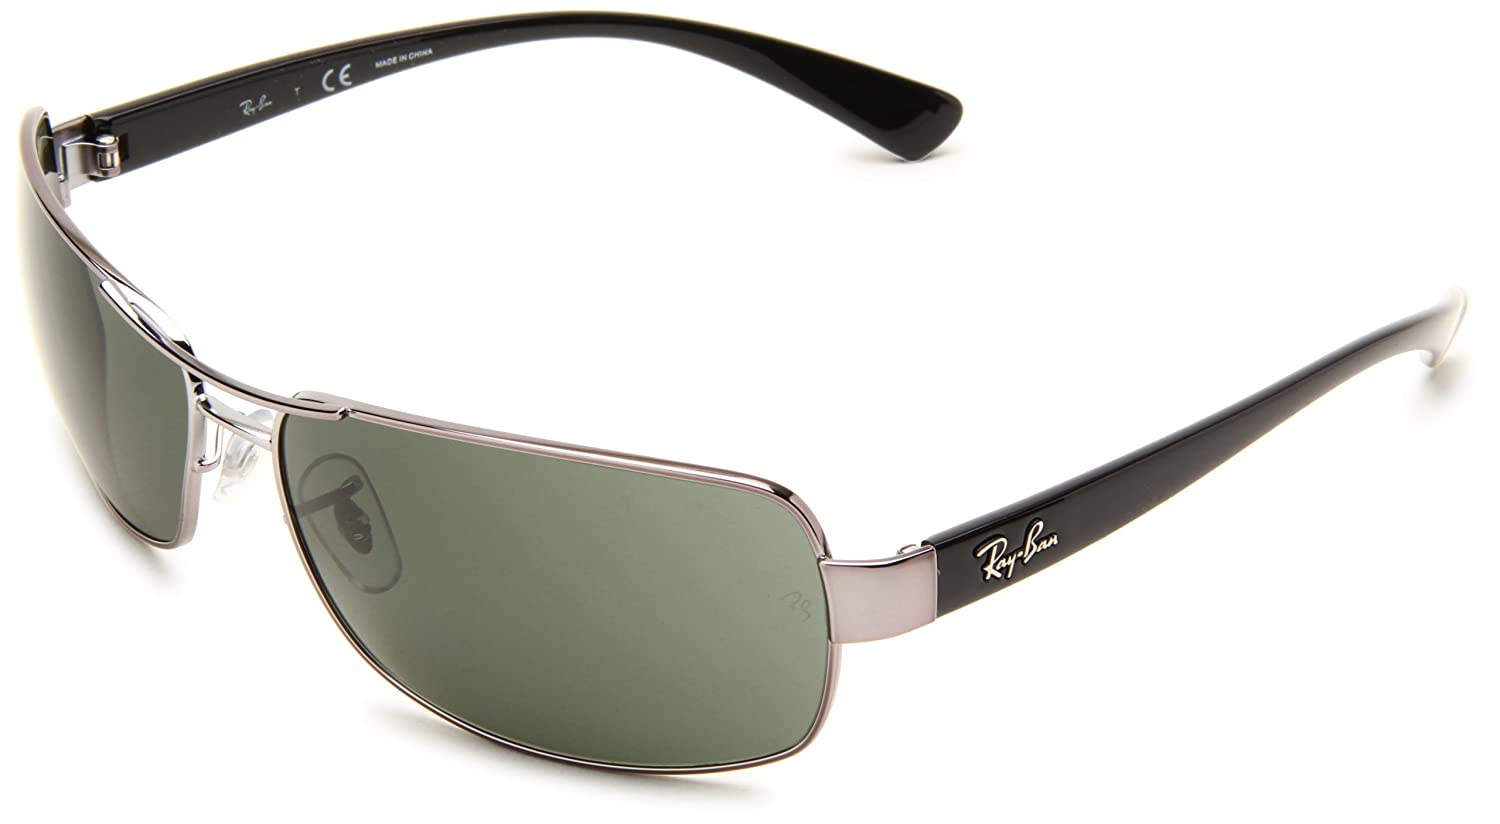 f02995d6a1d Ray-Ban Sunglasses (RB 3379 004 64)  Amazon.co.uk  Clothing